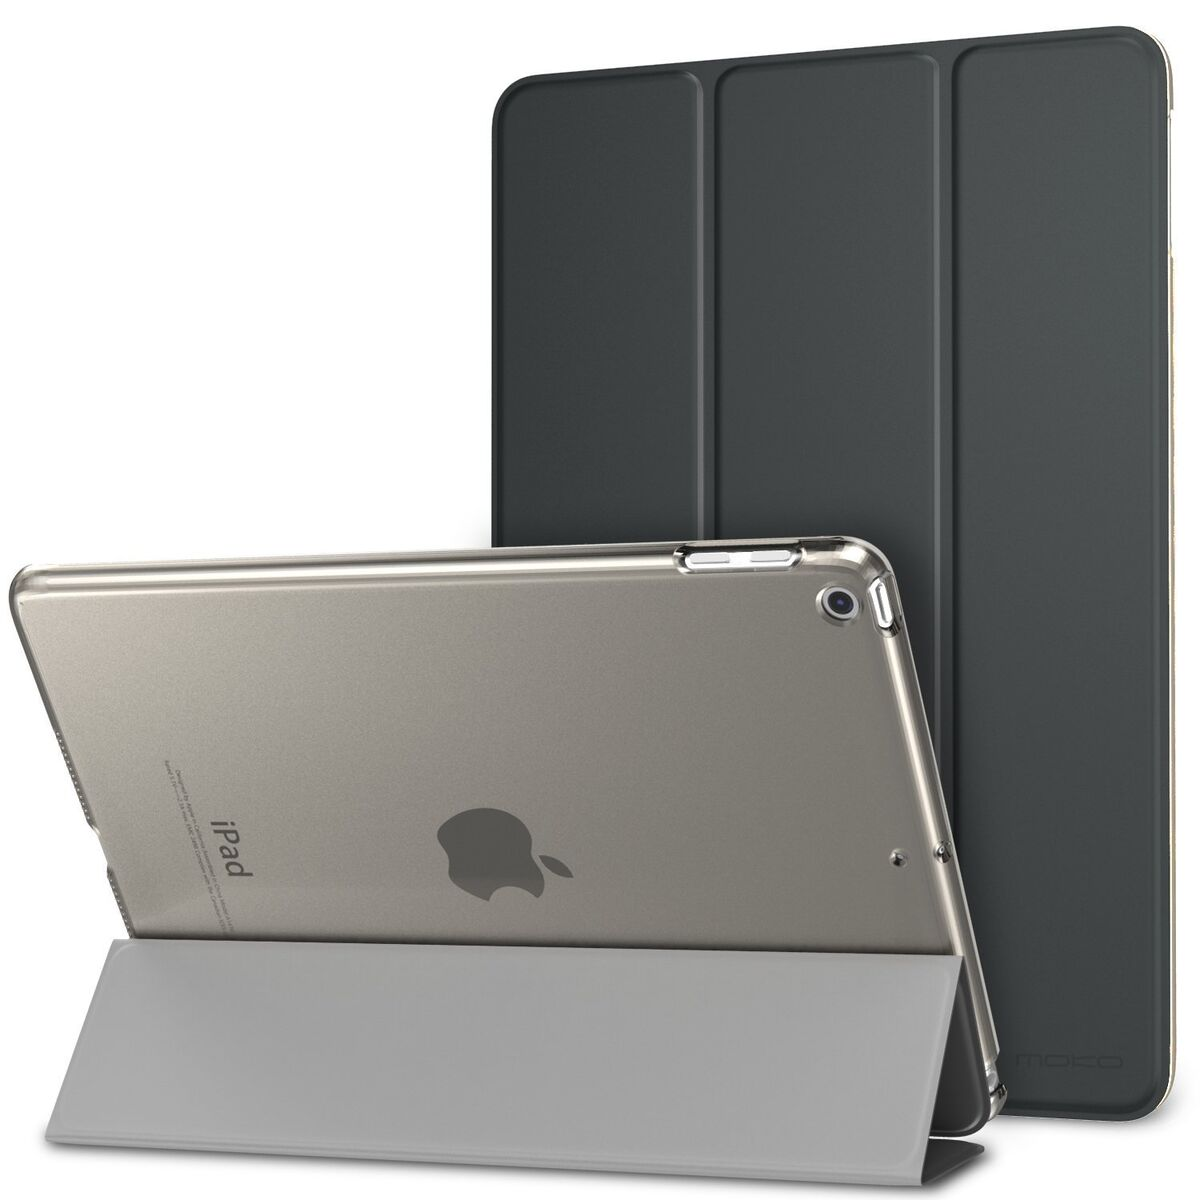 Smart cover integrale custodia supporto per apple ipad 9 7 2018 nera 